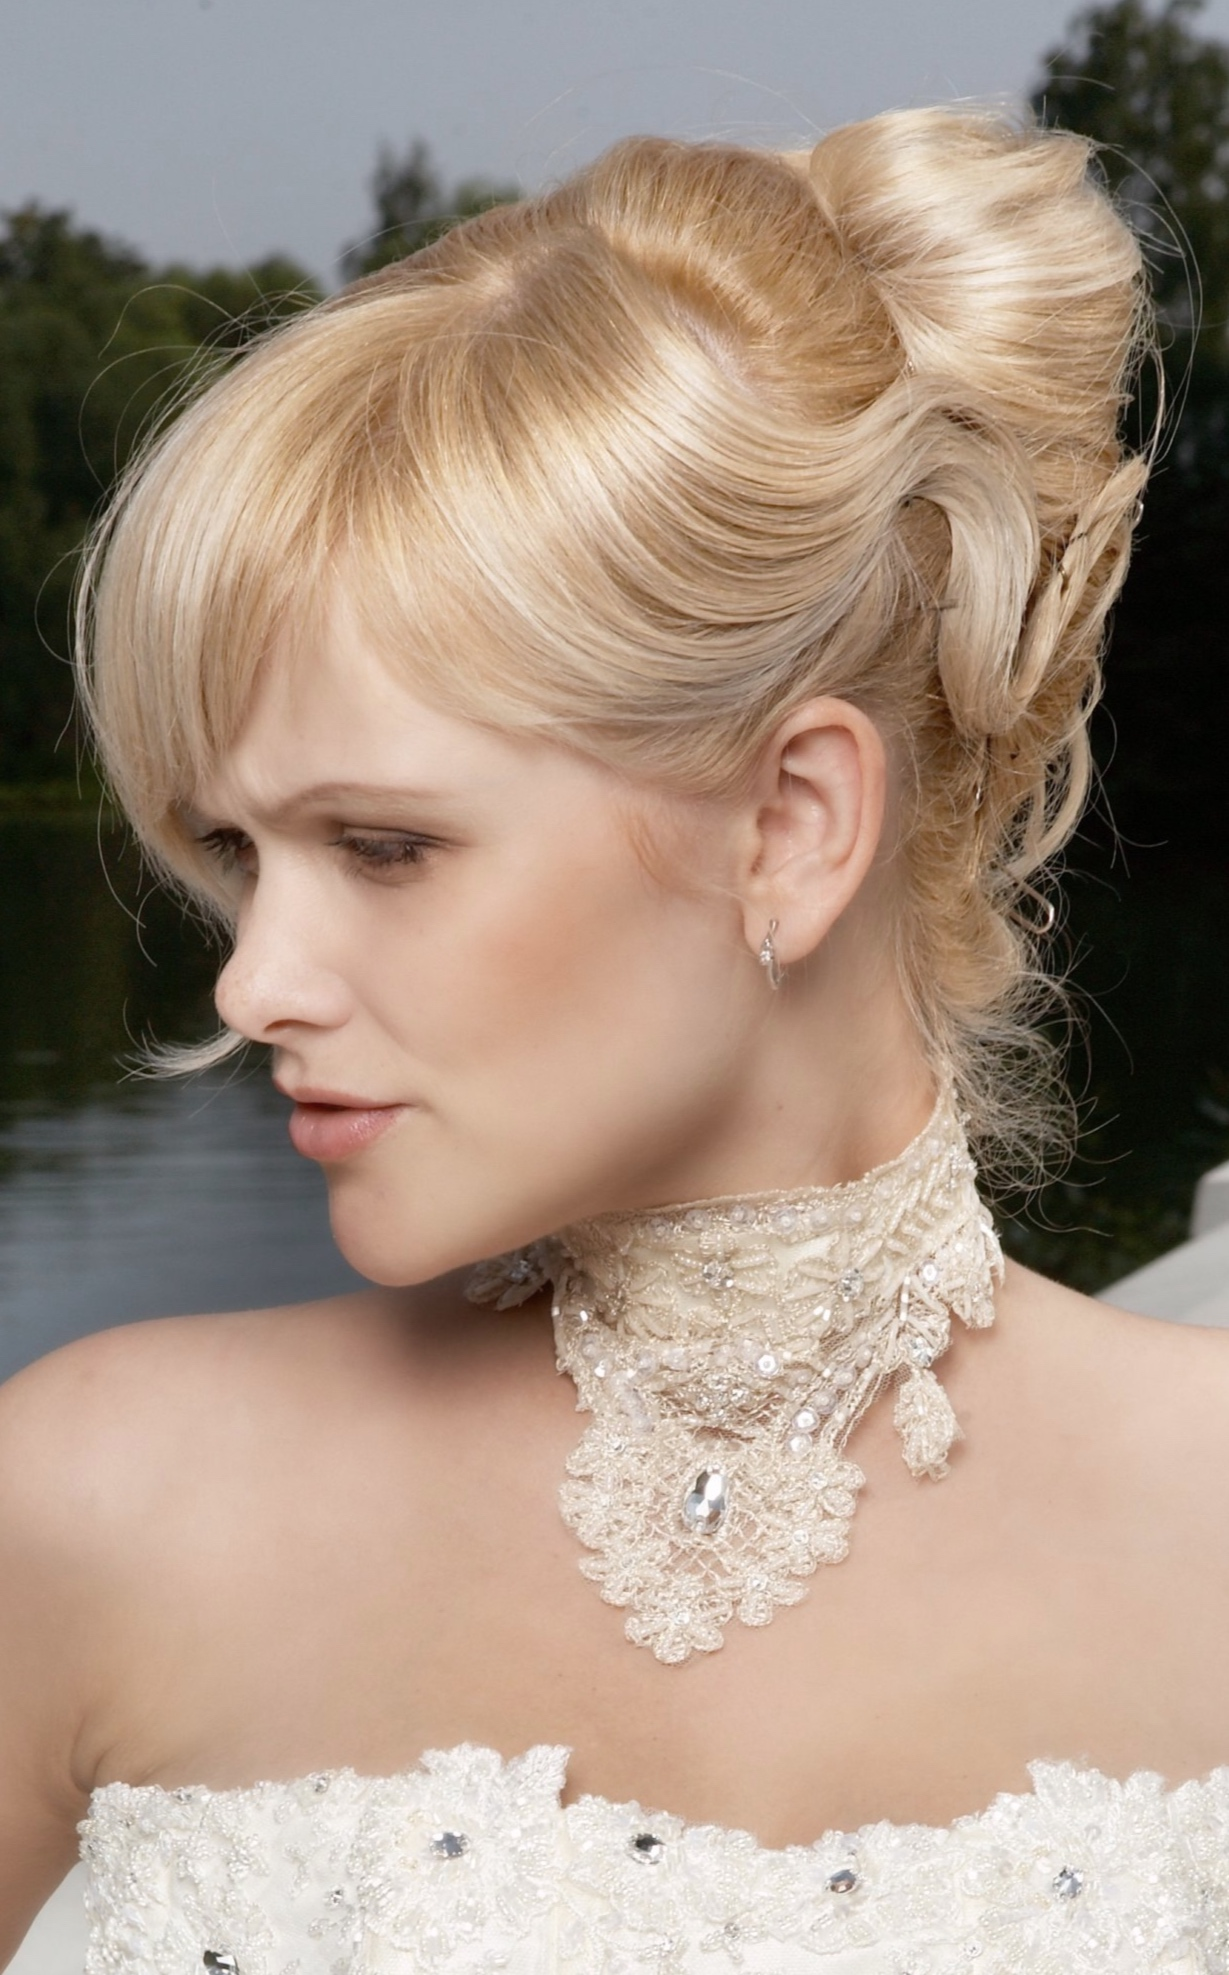 Bridal makeup and hair updo wedding.jpg